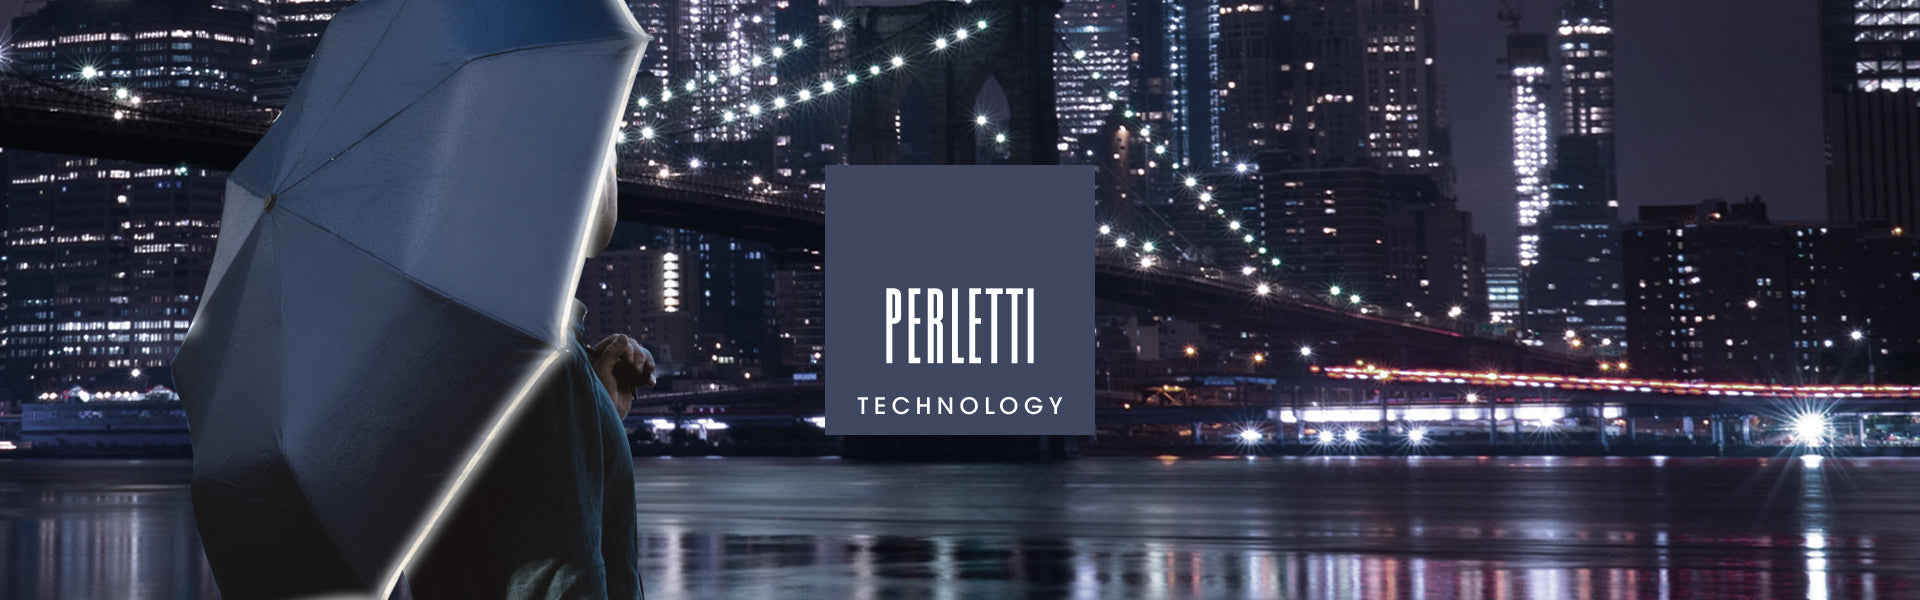 Perletti Technology